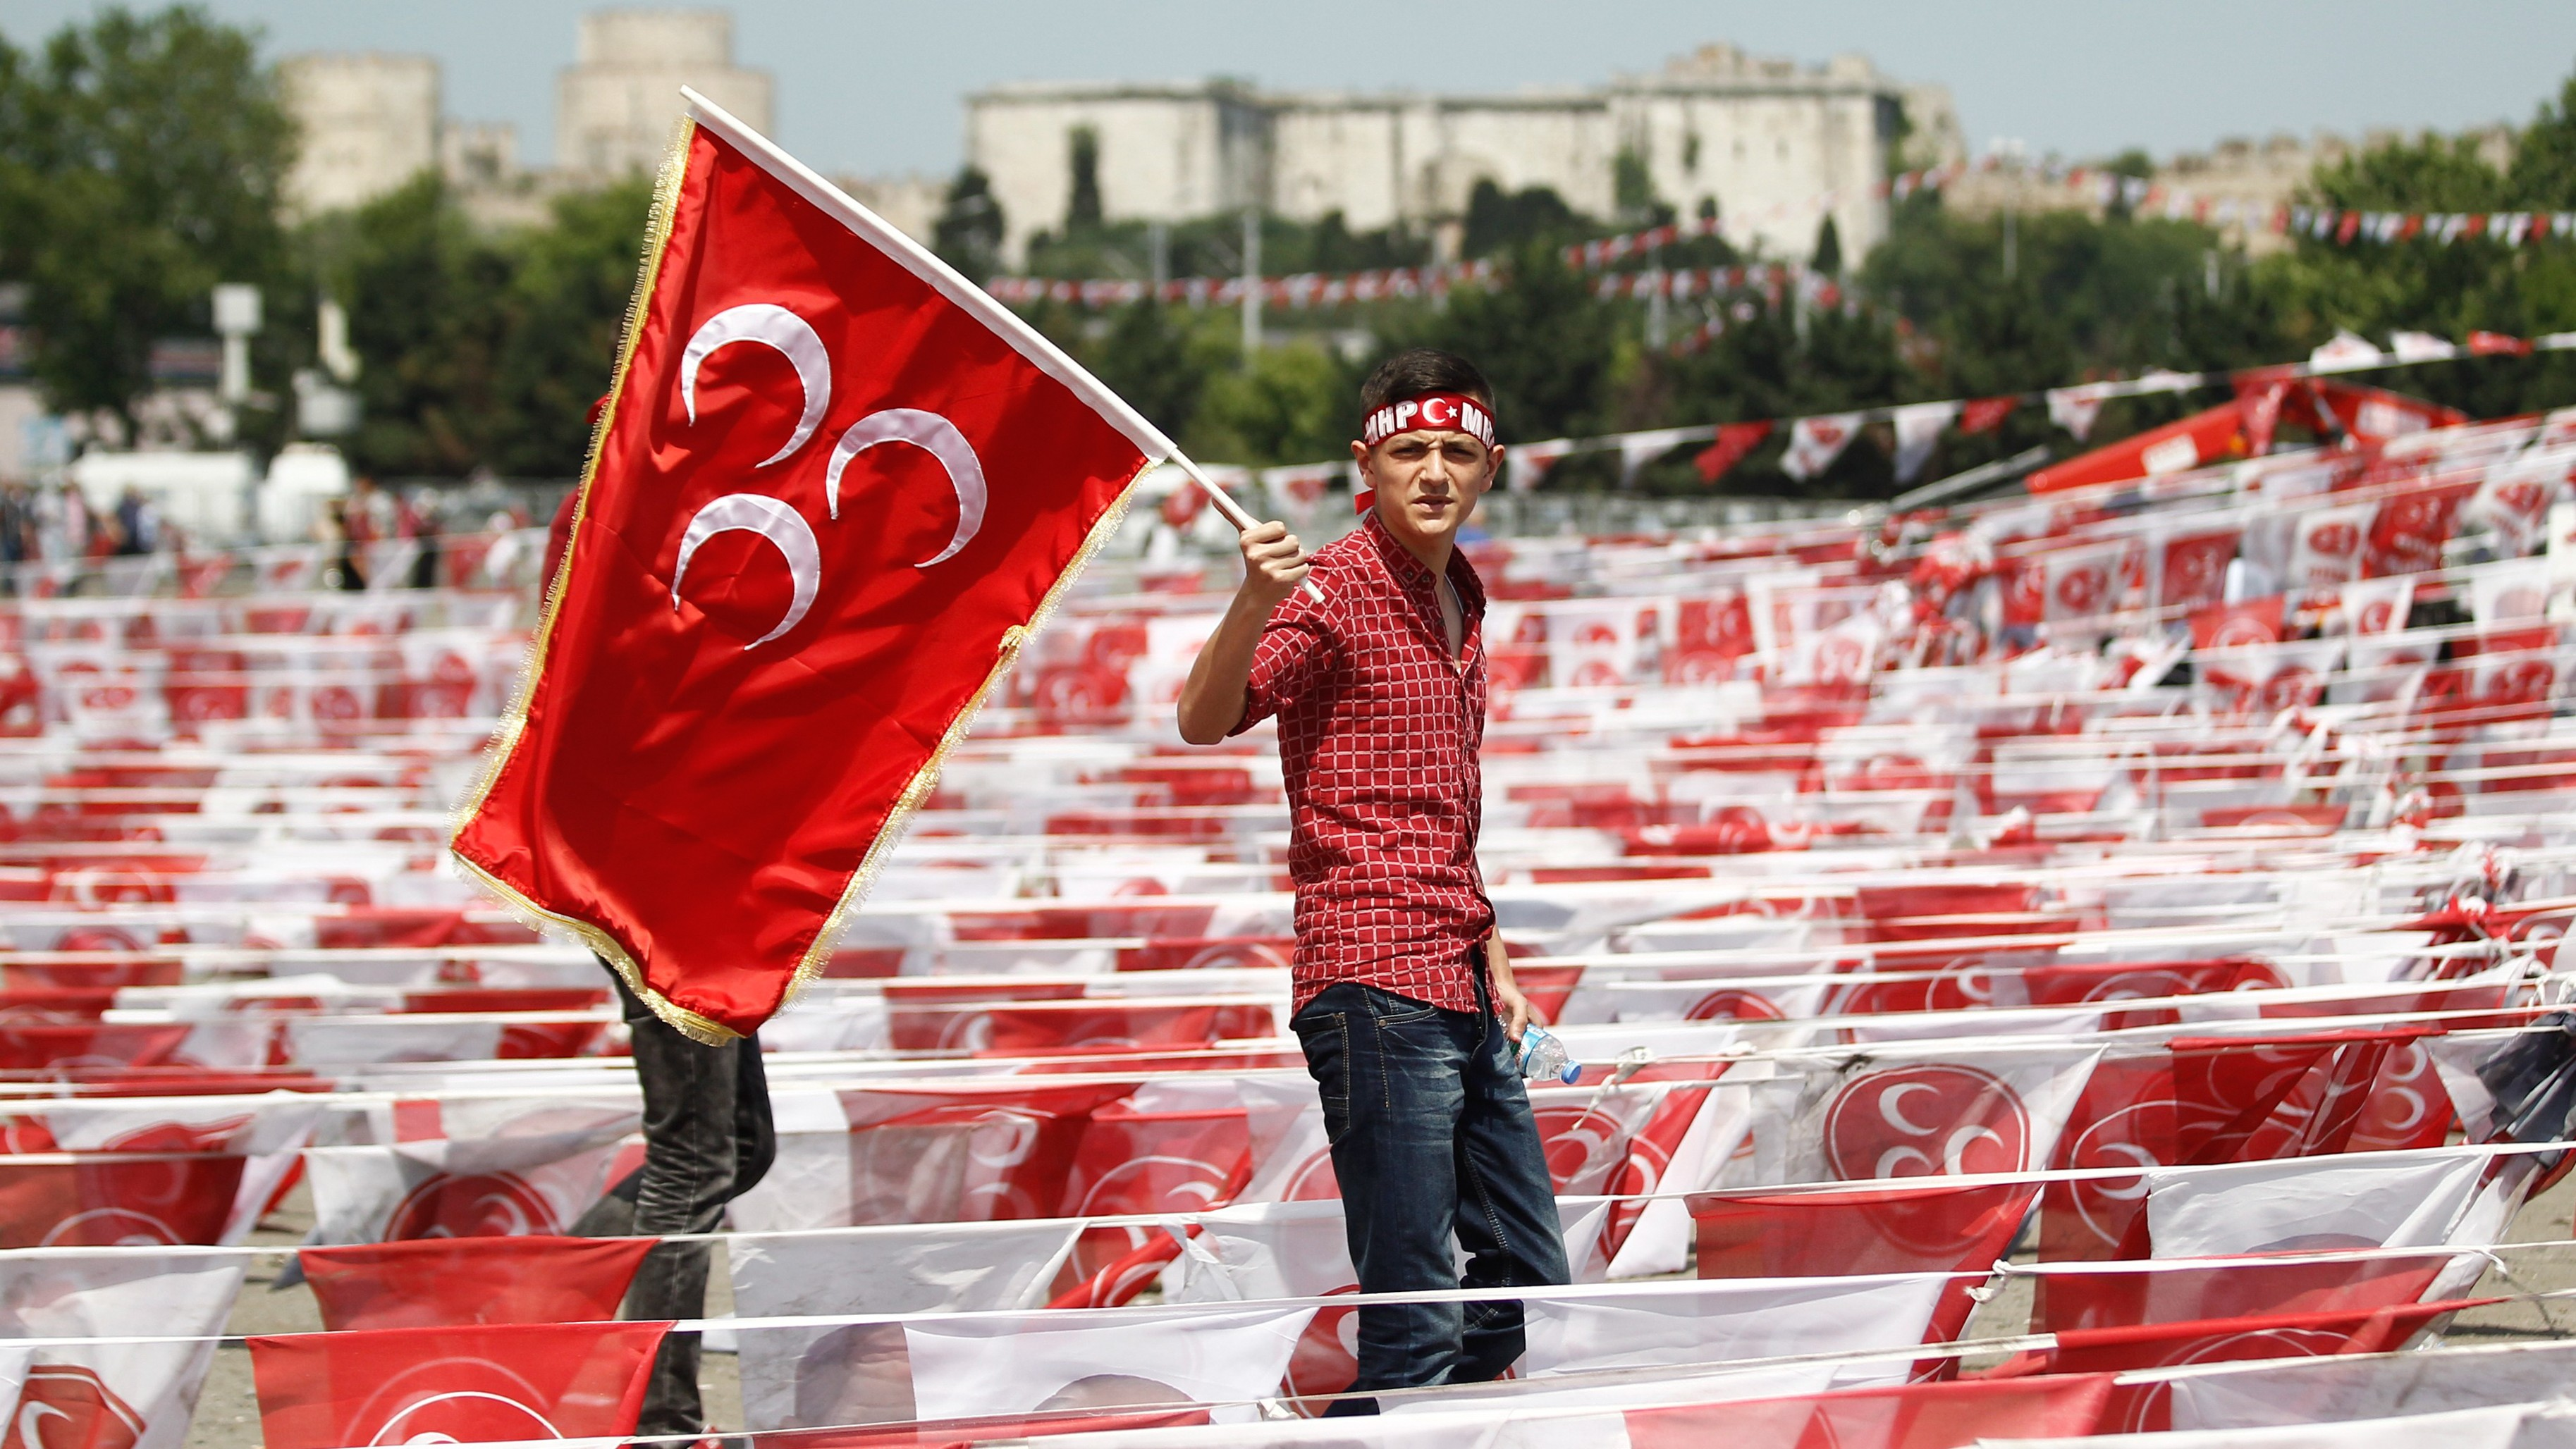 Volunteers Rush to Monitor Turkish Elections Amid Fears of Fraud